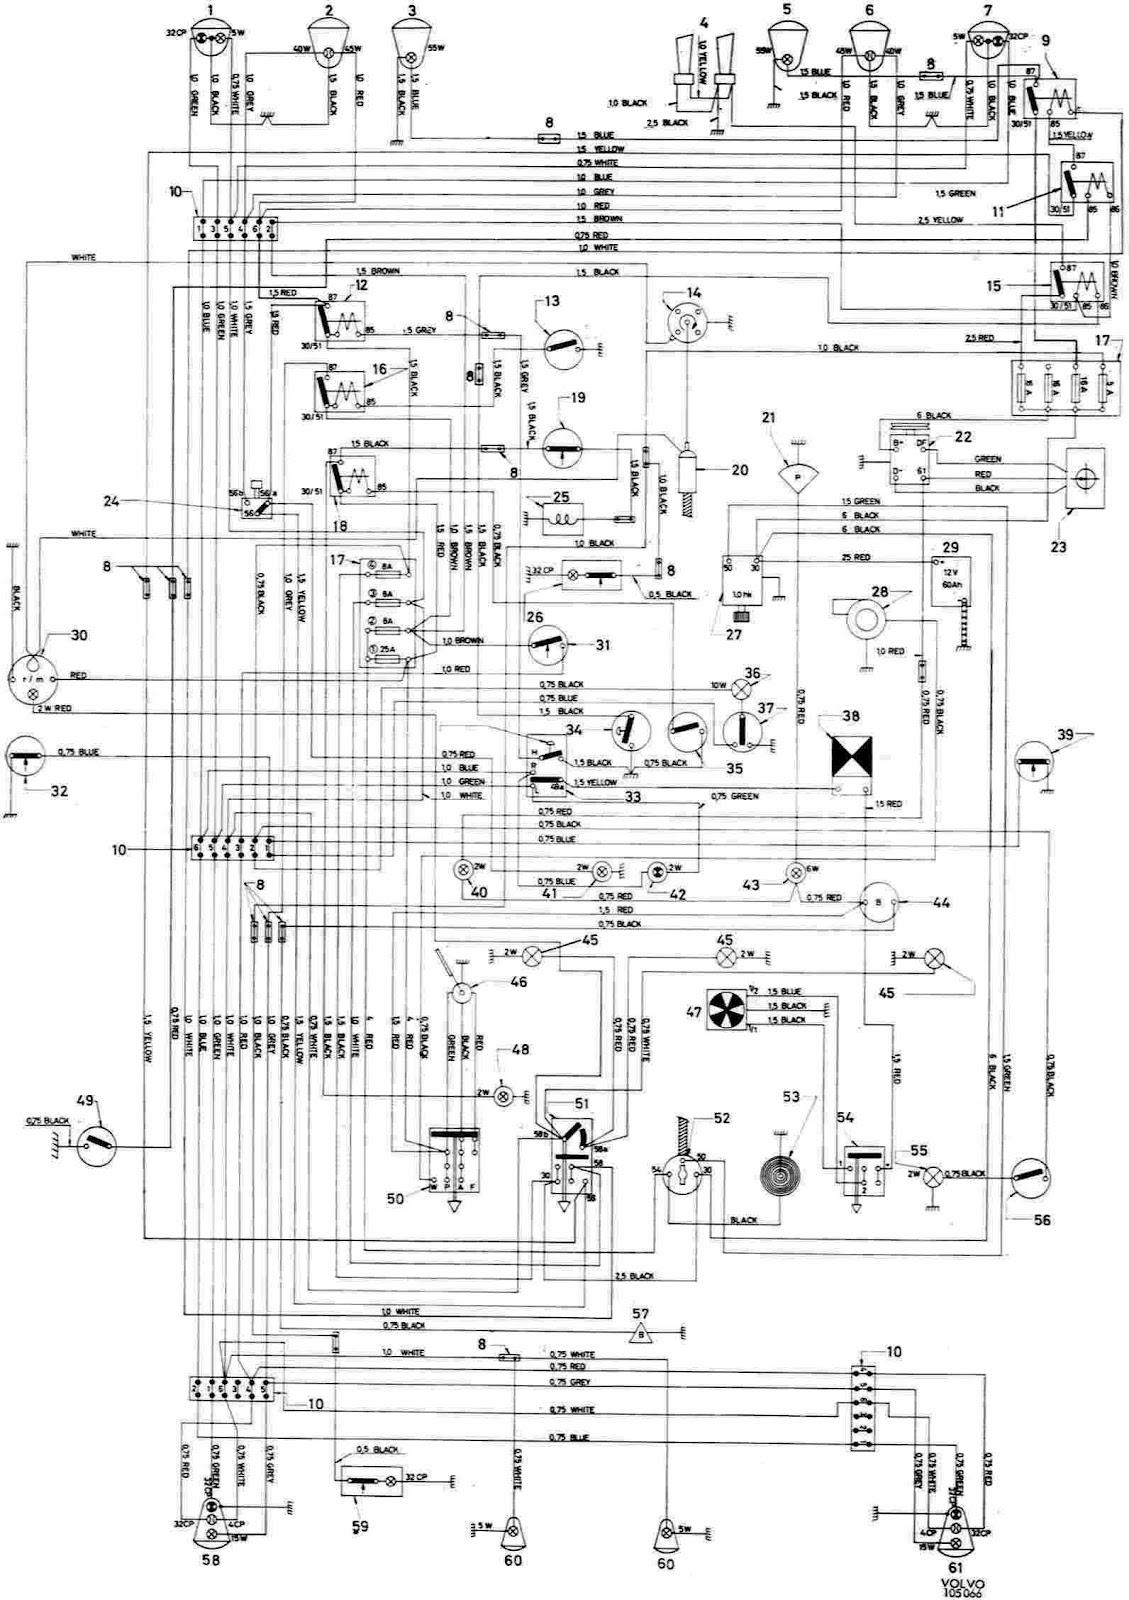 Volvo+123+GT+Complete+Wiring+Diagram 2005 volvo s40 wiring diagram volvo s40 steering diagram \u2022 wiring volvo xc90 stereo wiring diagram at alyssarenee.co